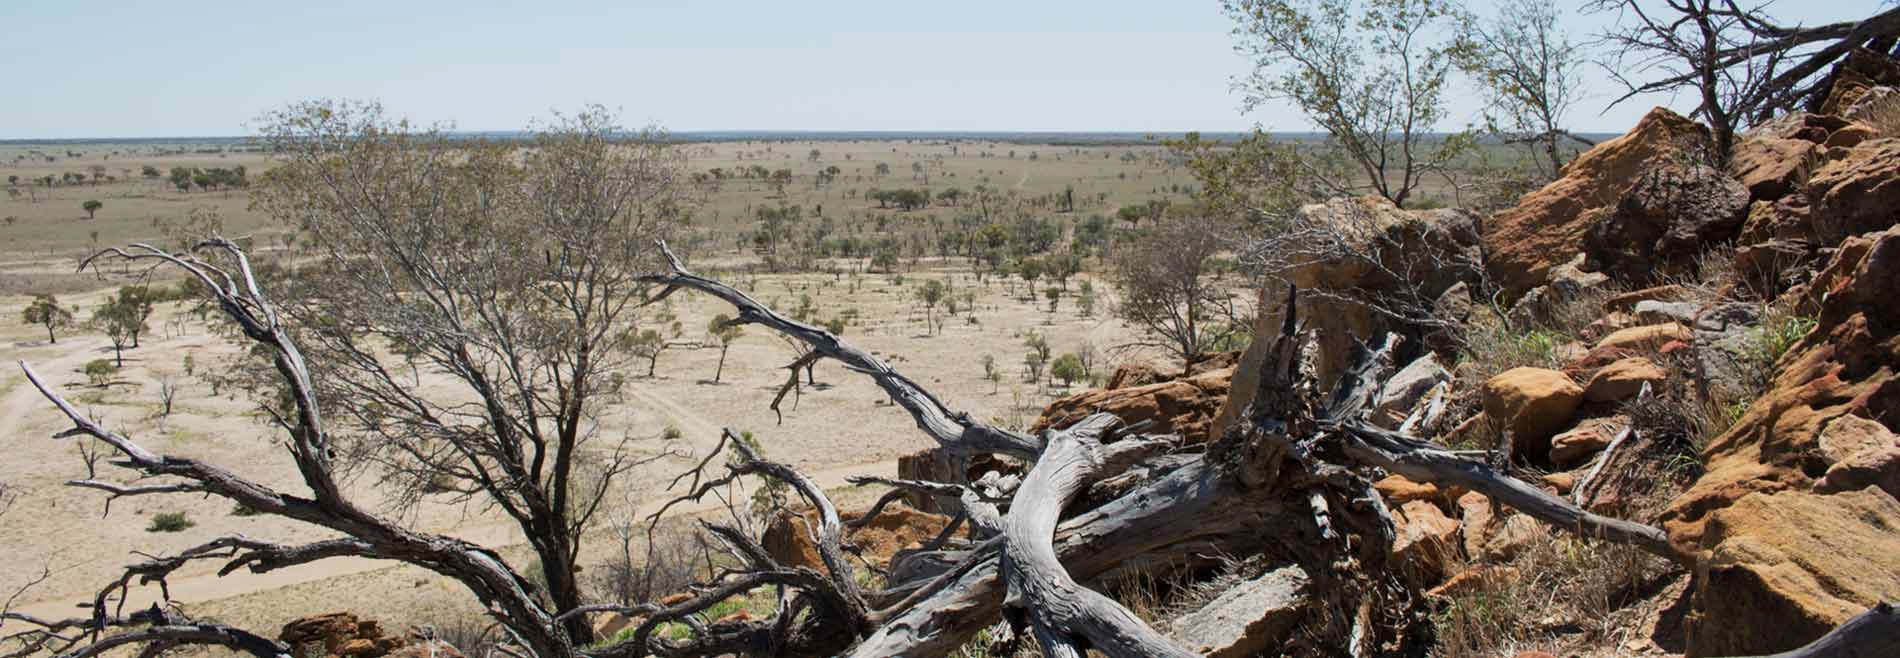 A sparce vista of the longreach region.